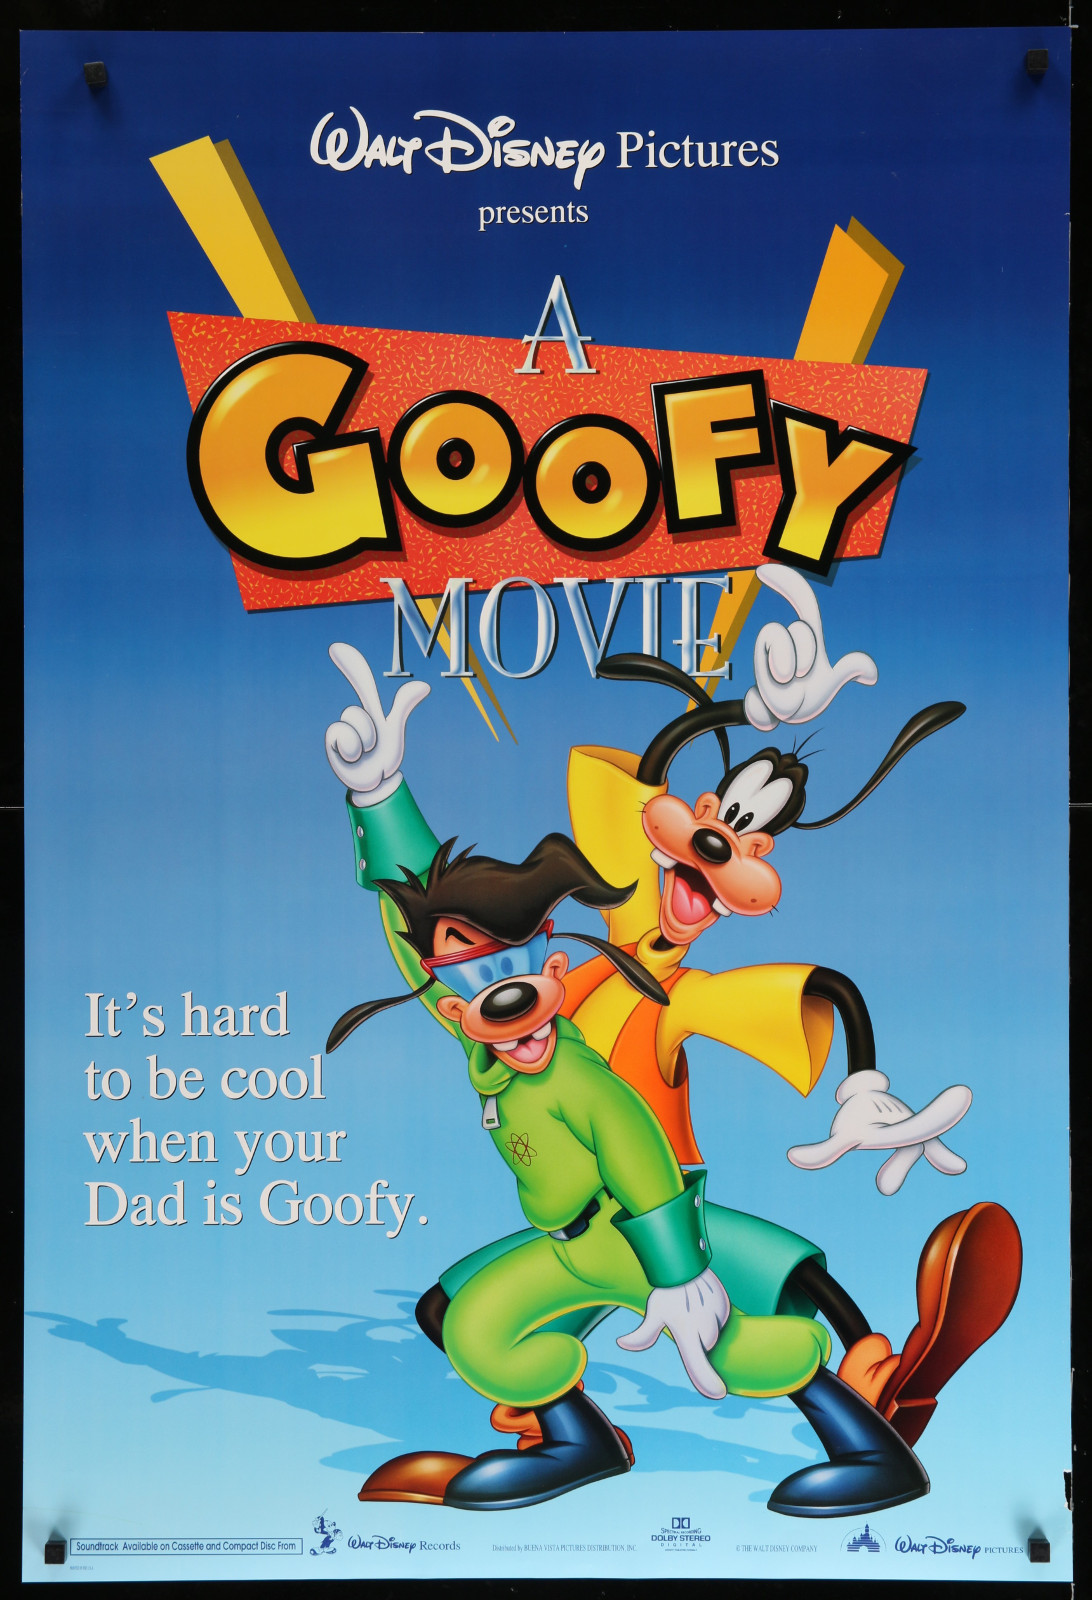 A Goofy Movie (Blue) 2A366 A Part Of A Lot 29 Unfolded Double-Sided 27X40 One-Sheets '90S-00S Great Movie Images!